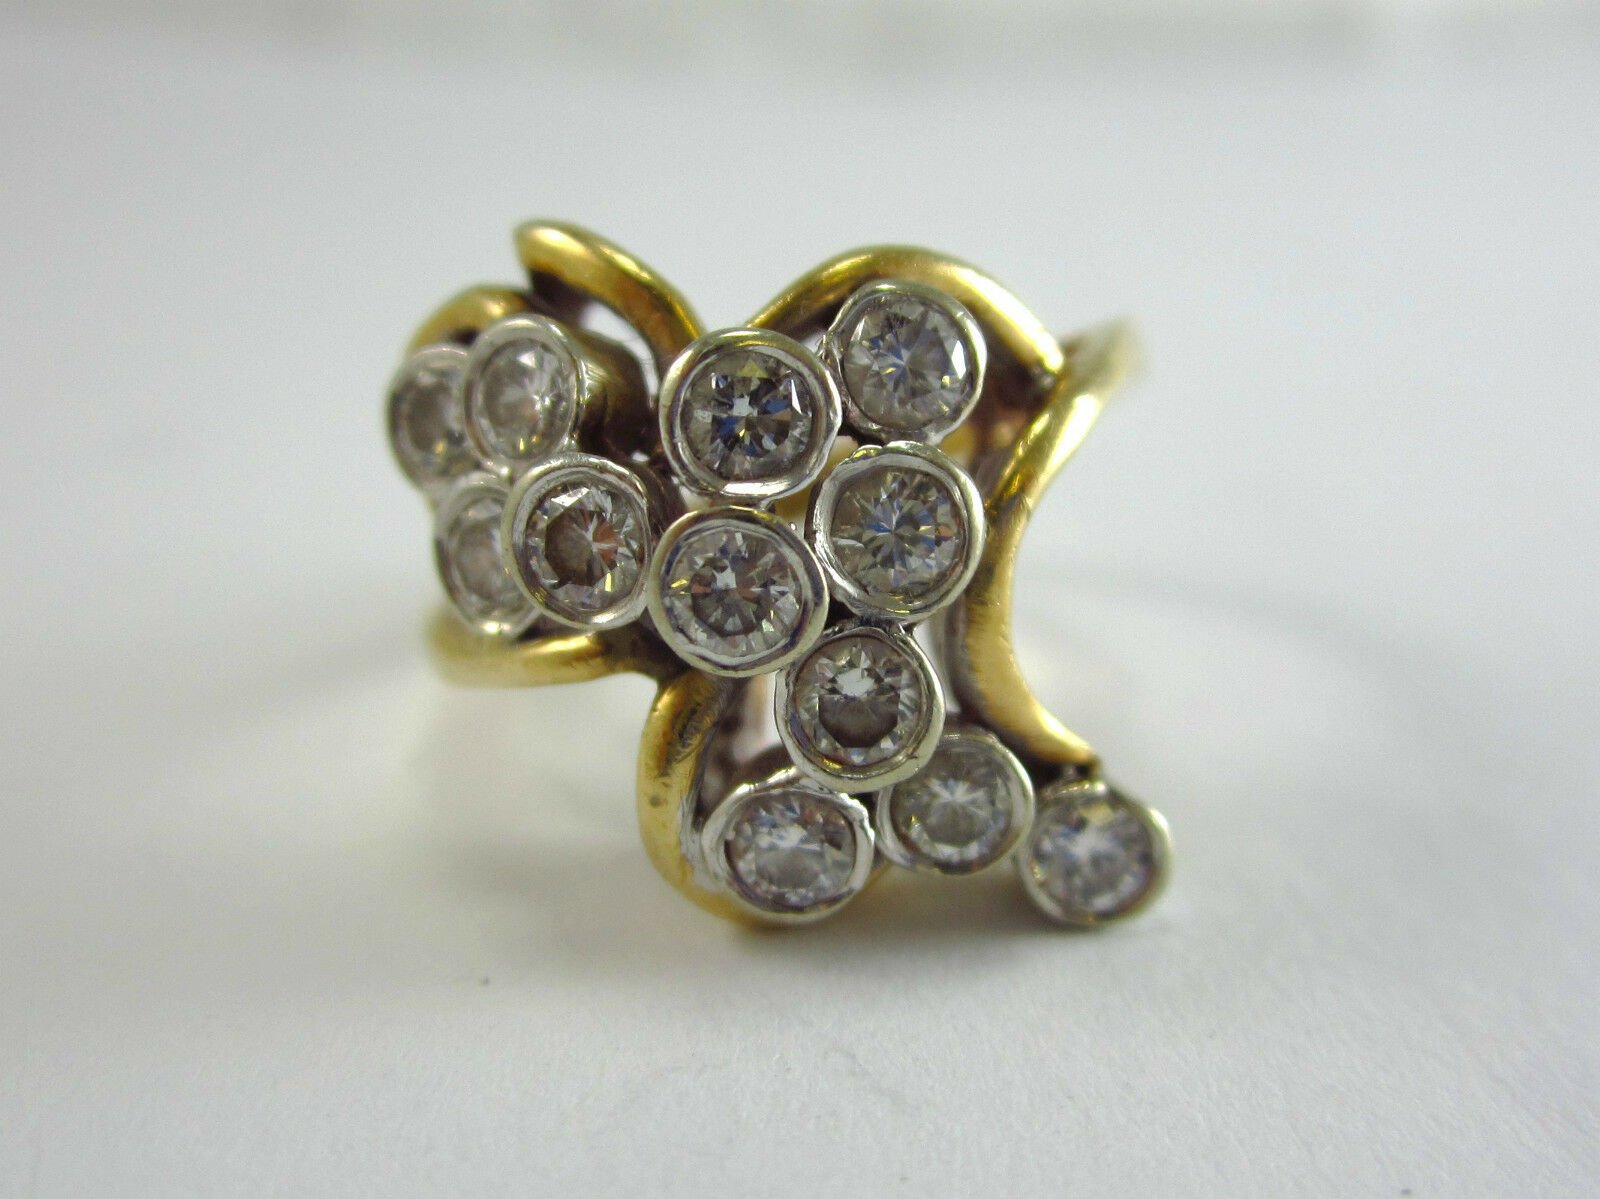 BEAUTIFUL LADIES 14K YELLOW gold DIAMOND CLUSTER STYLE RING 5.8G 0.36CT. SZ 6